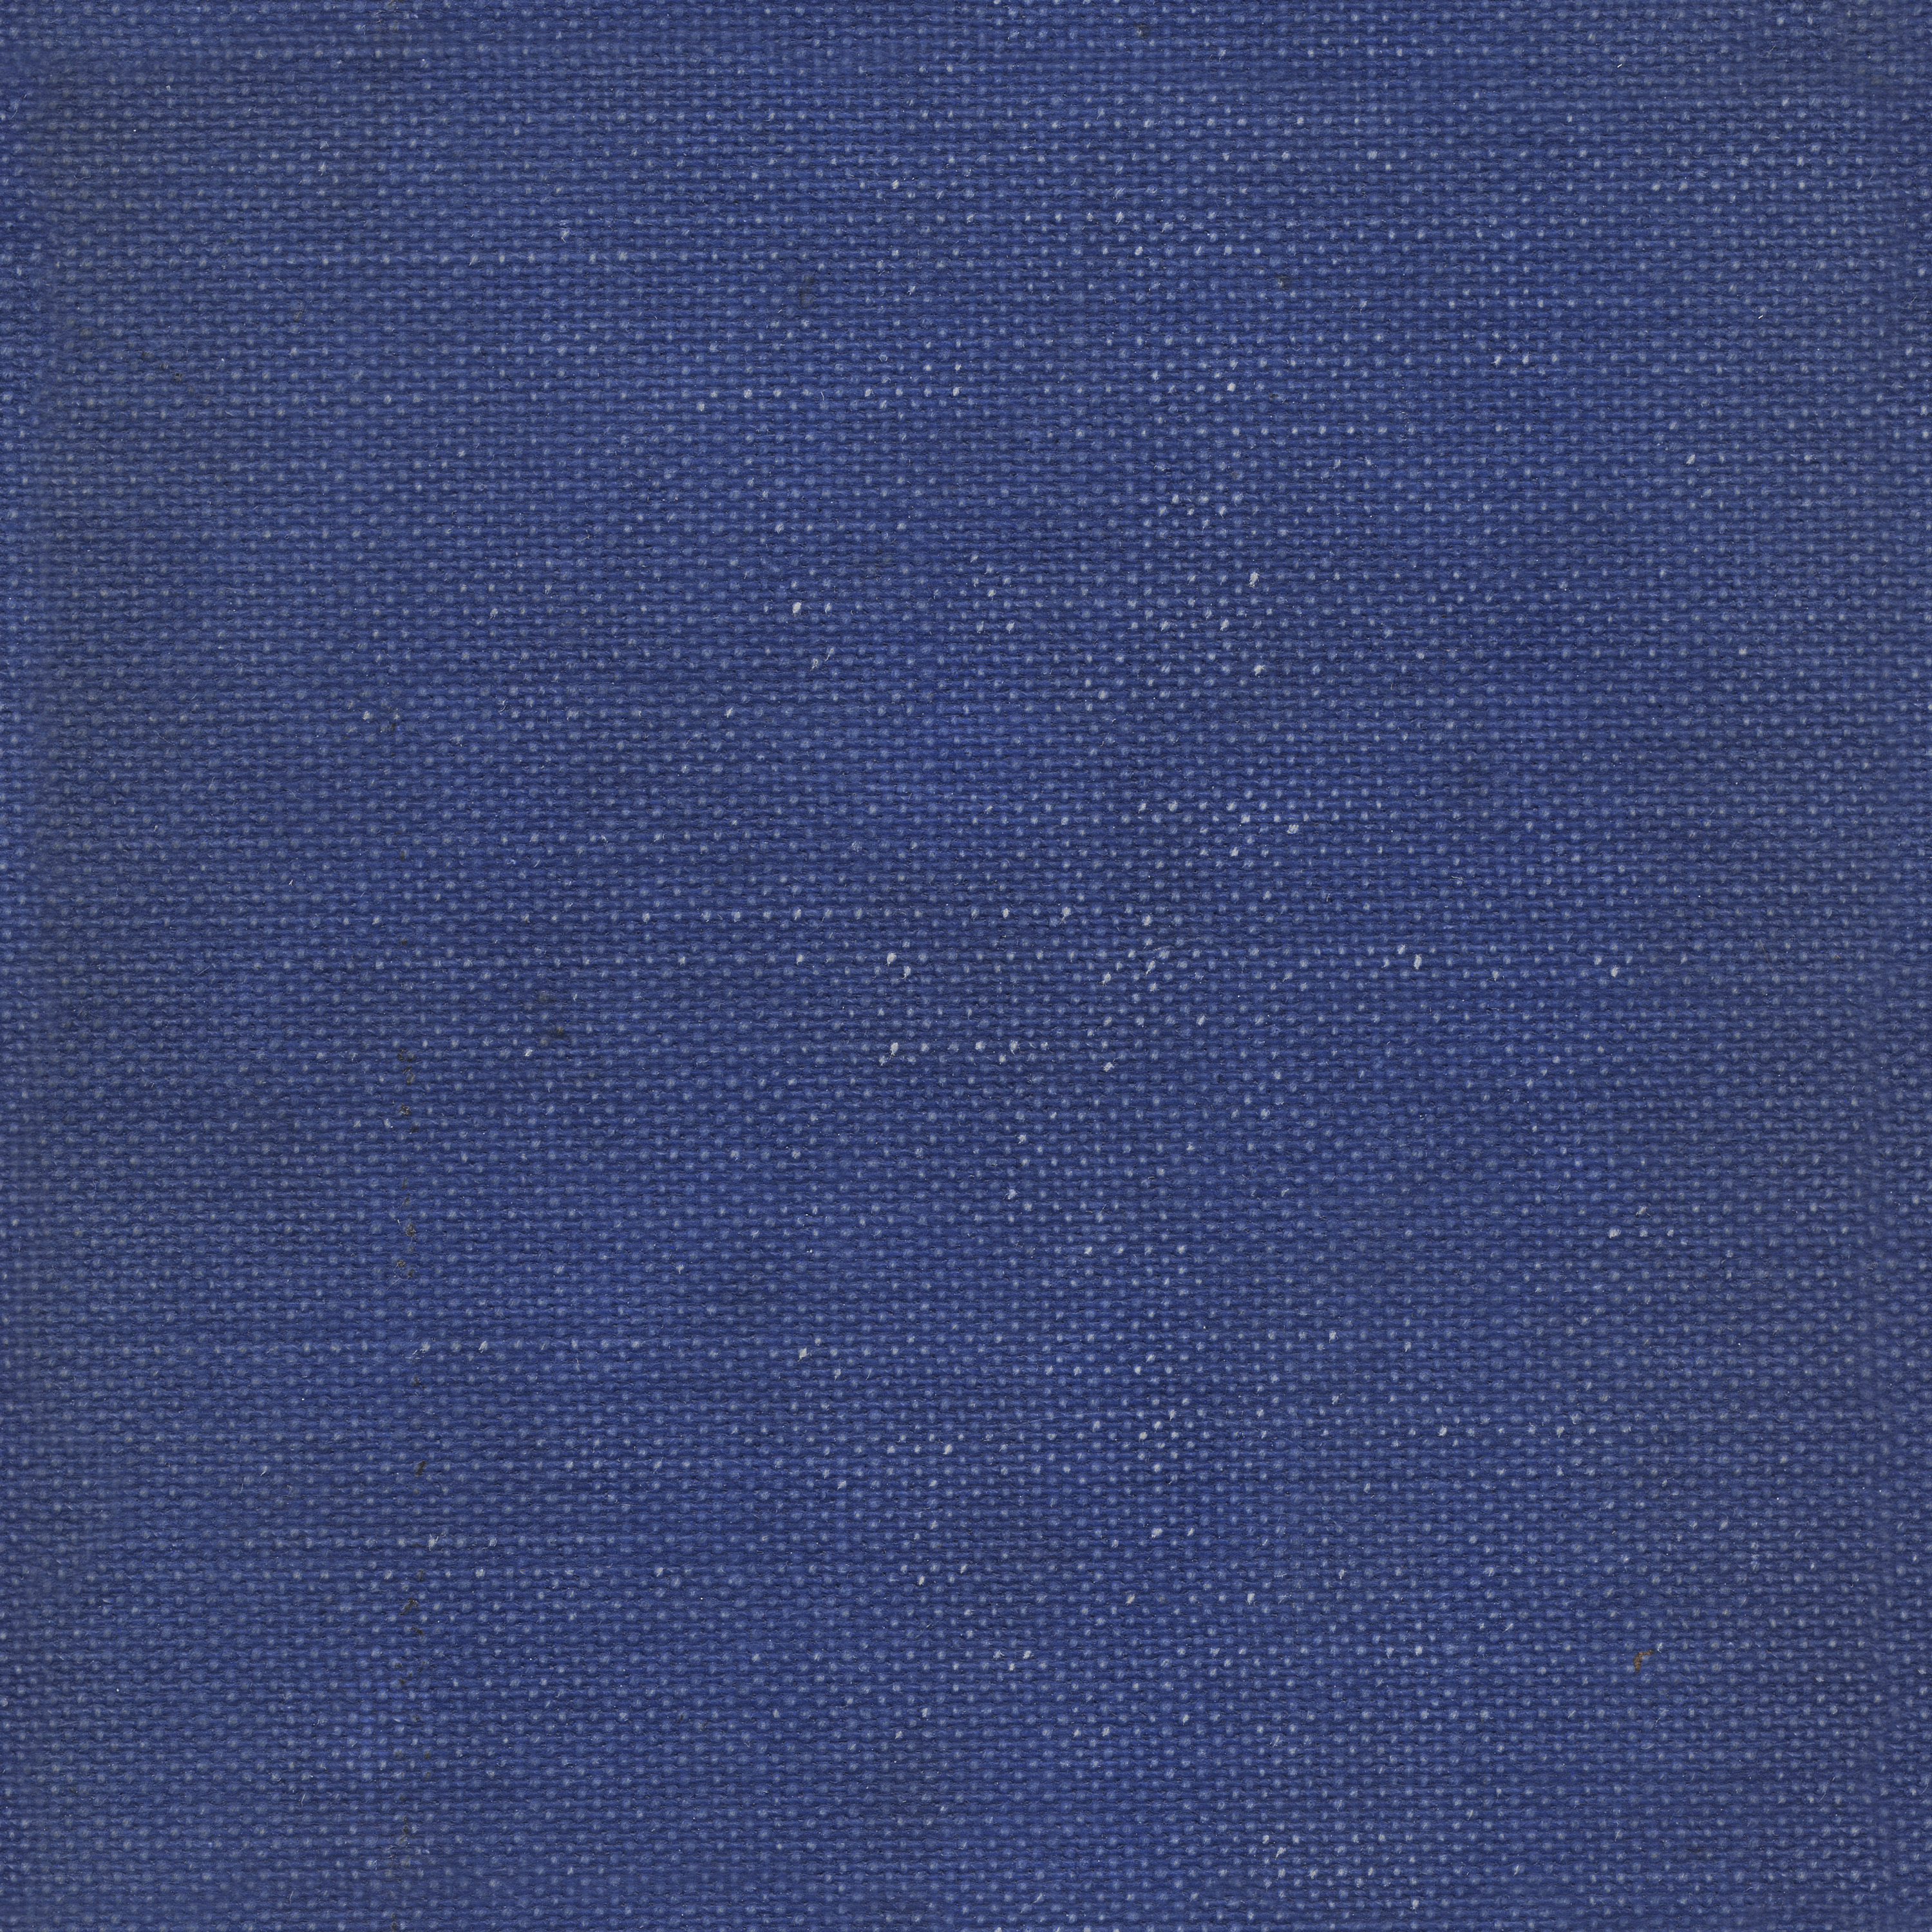 Free Seamless Book Cover Textures Texture L+T